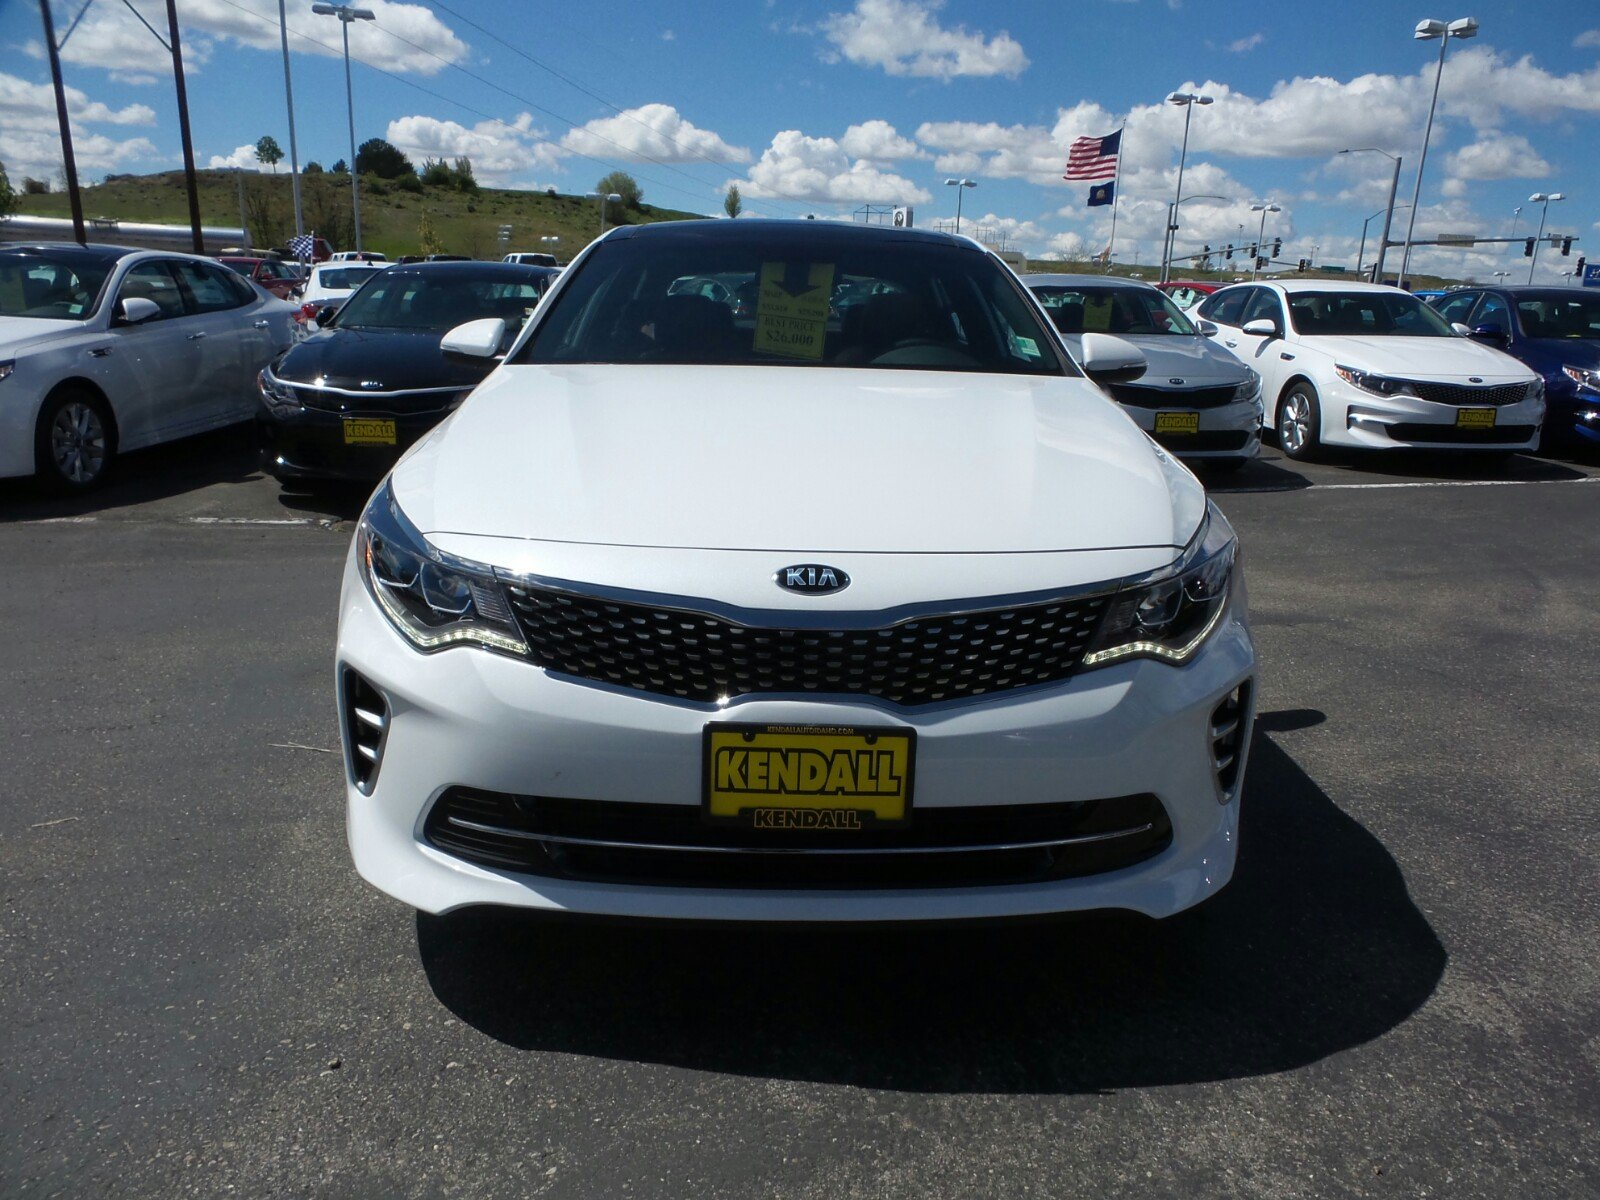 new 2017 kia optima sx in nampa 970554 kendall at the idaho center auto mall. Black Bedroom Furniture Sets. Home Design Ideas